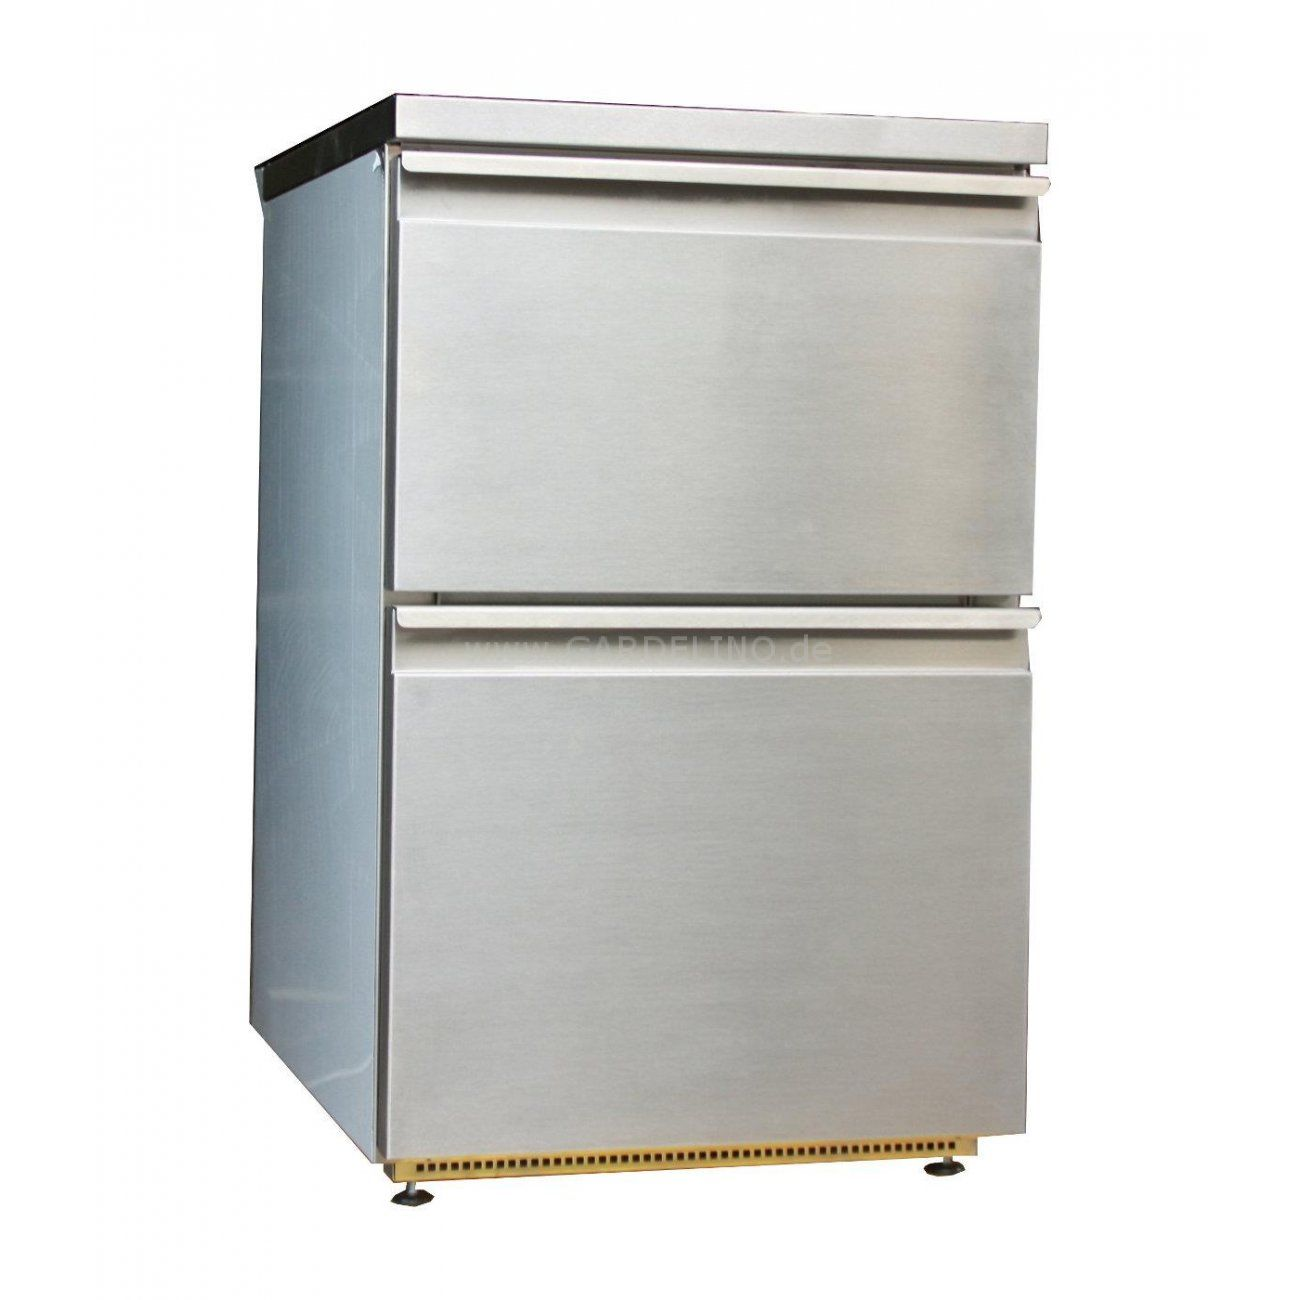 Outdoor Refrigerator Outside With Outdoor Kuhlschrank